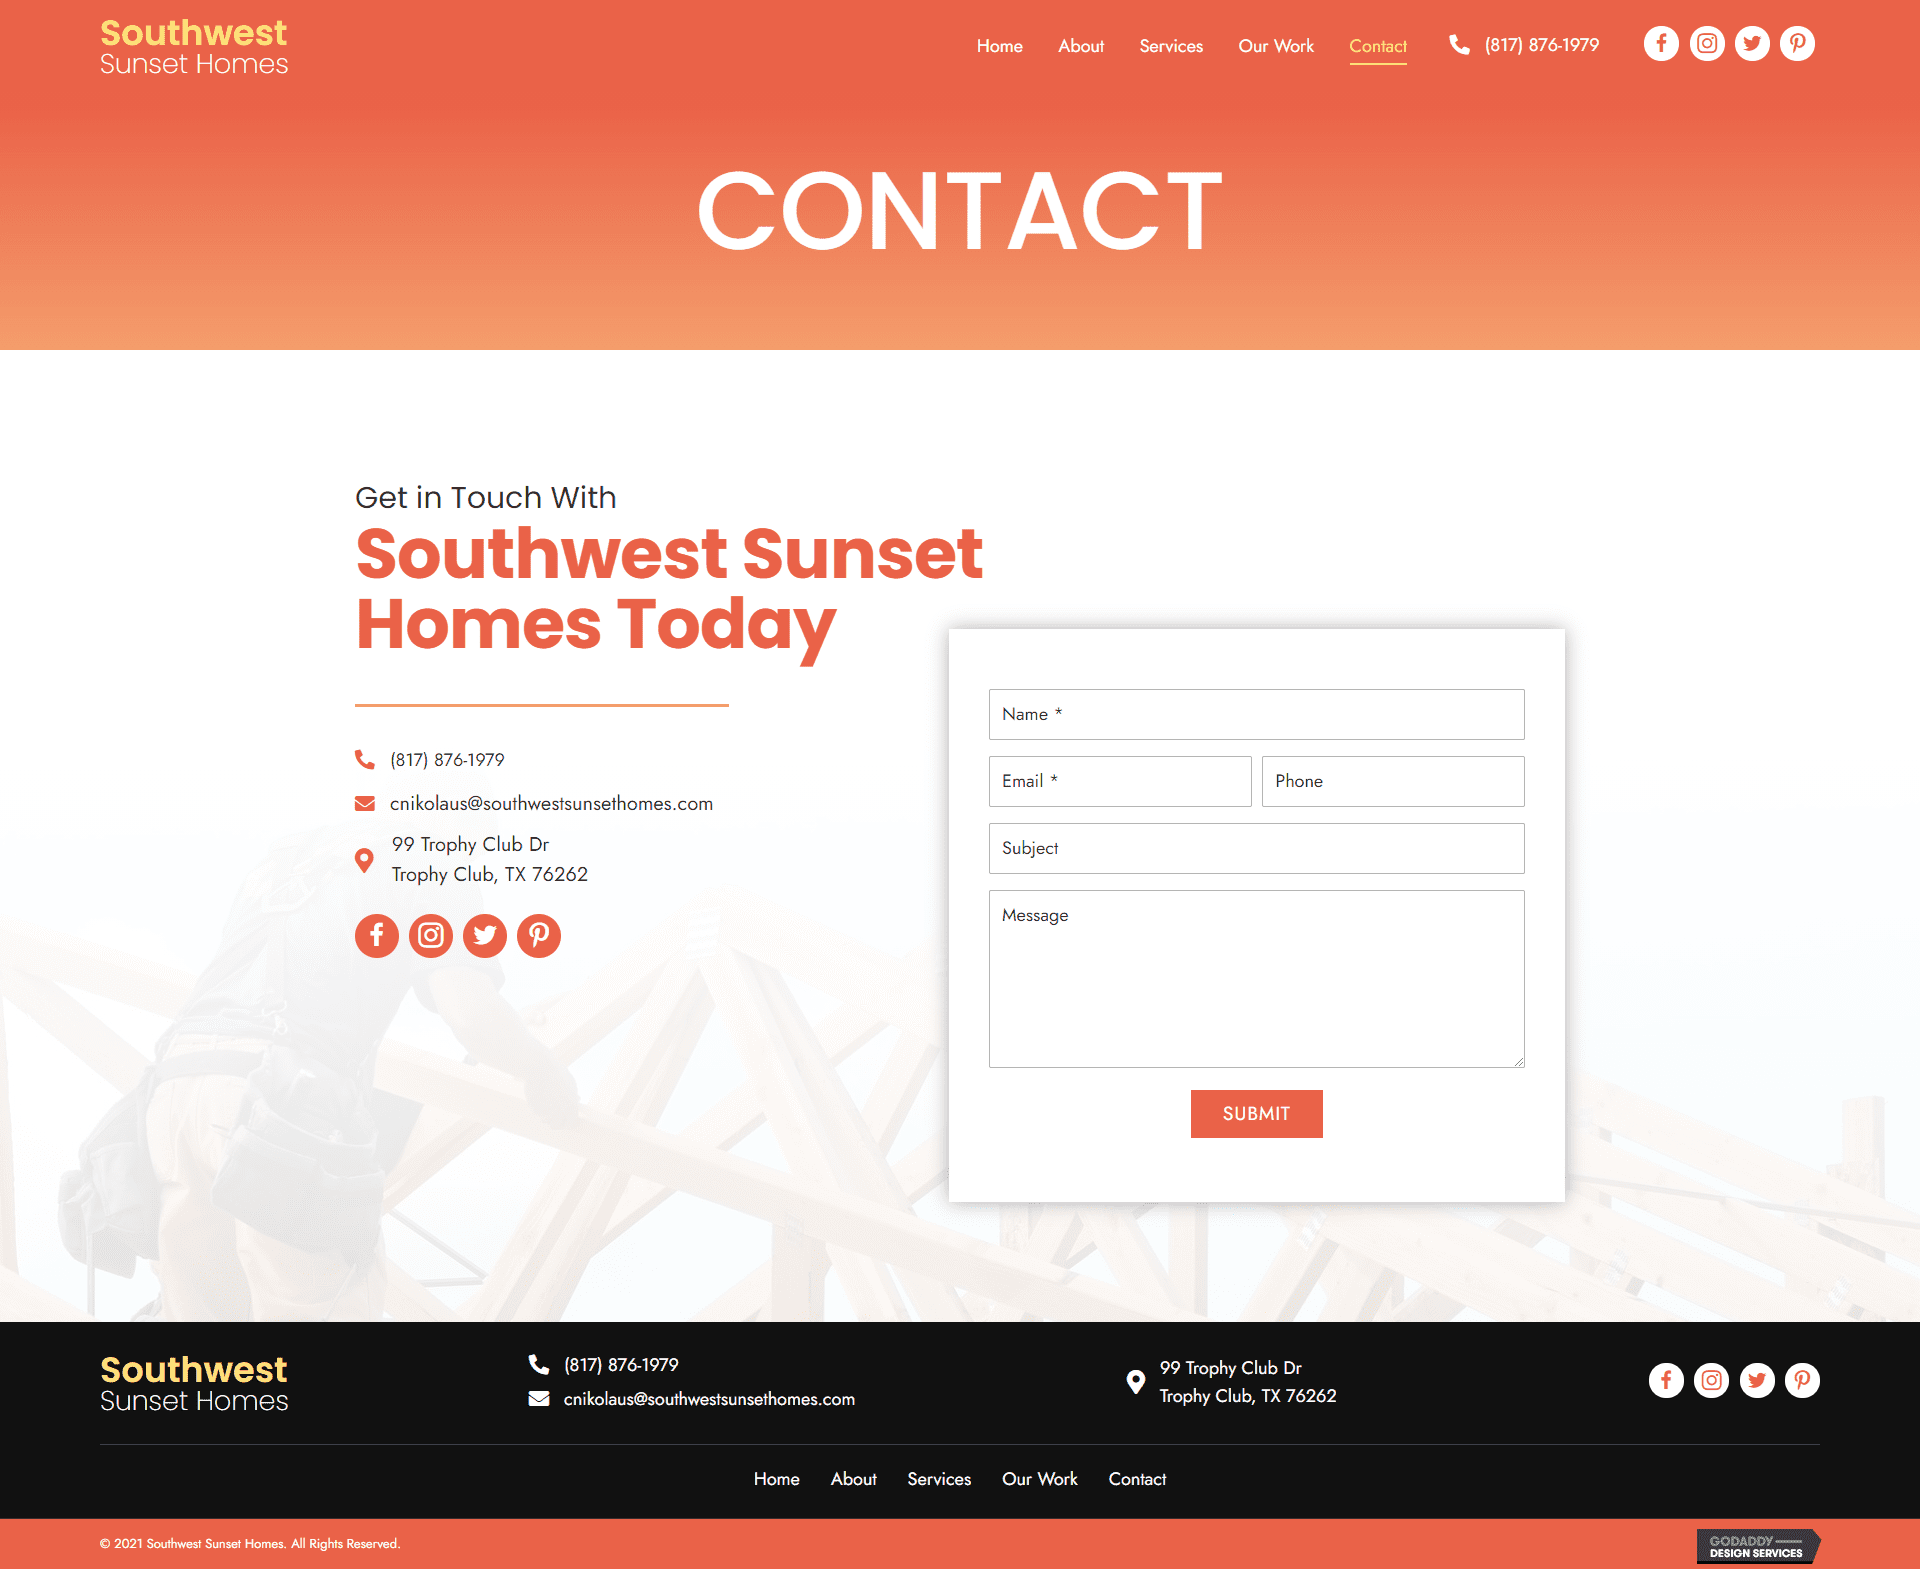 Southwest Sunset Homes Contact